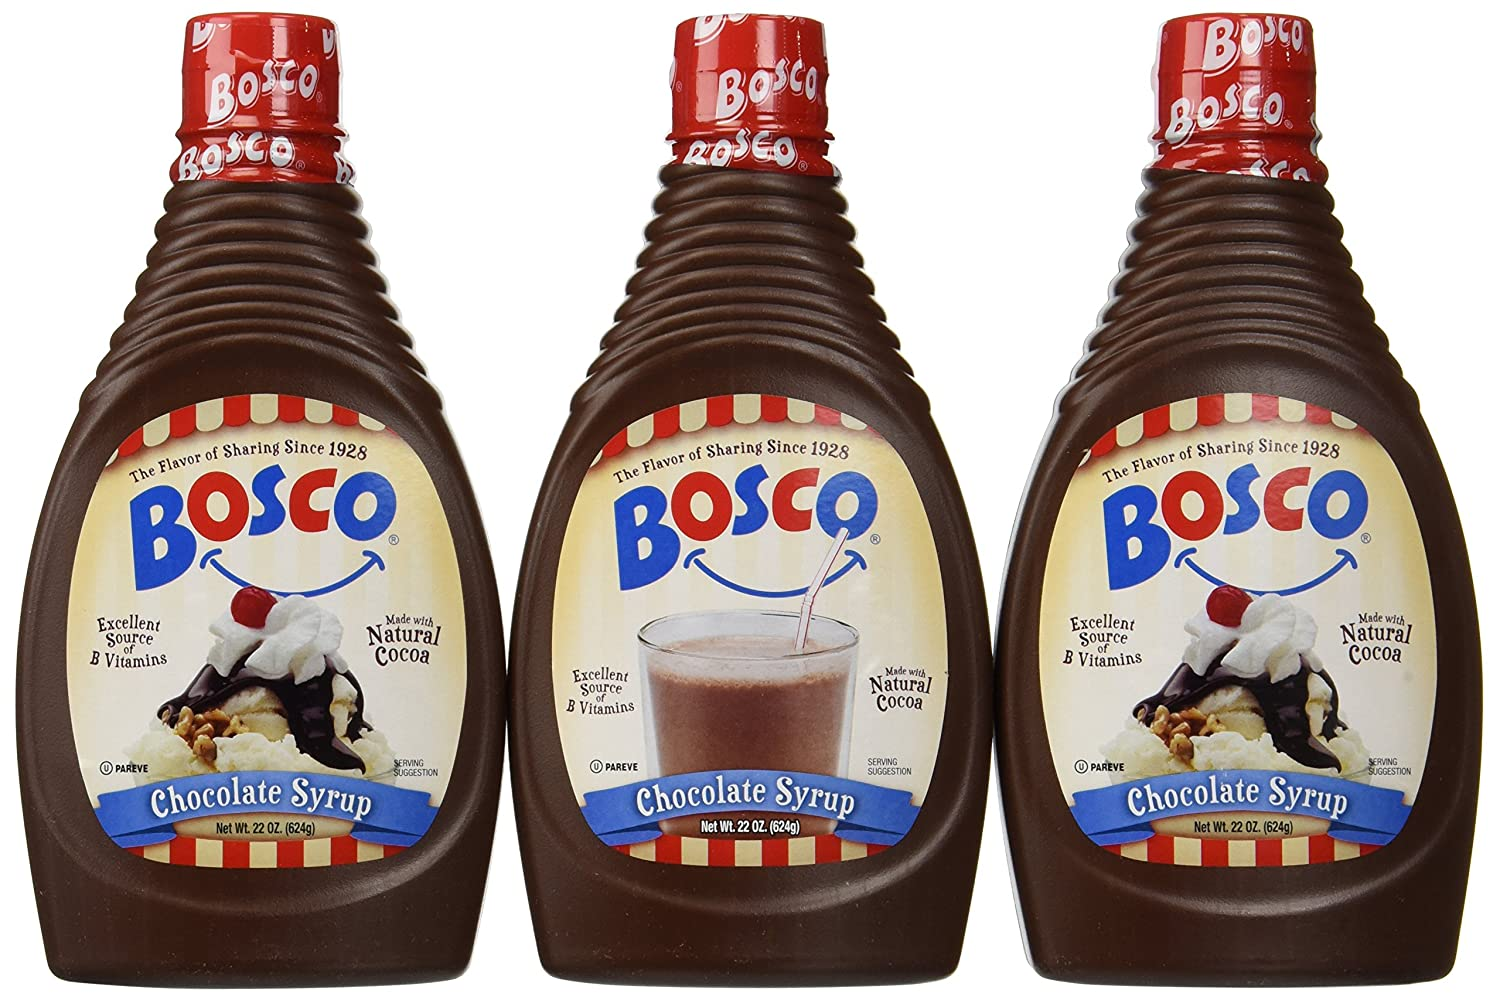 Amazon.com : Bosco Chocolate Syrup, 22-oz. squeeze bottle (Pack of ...